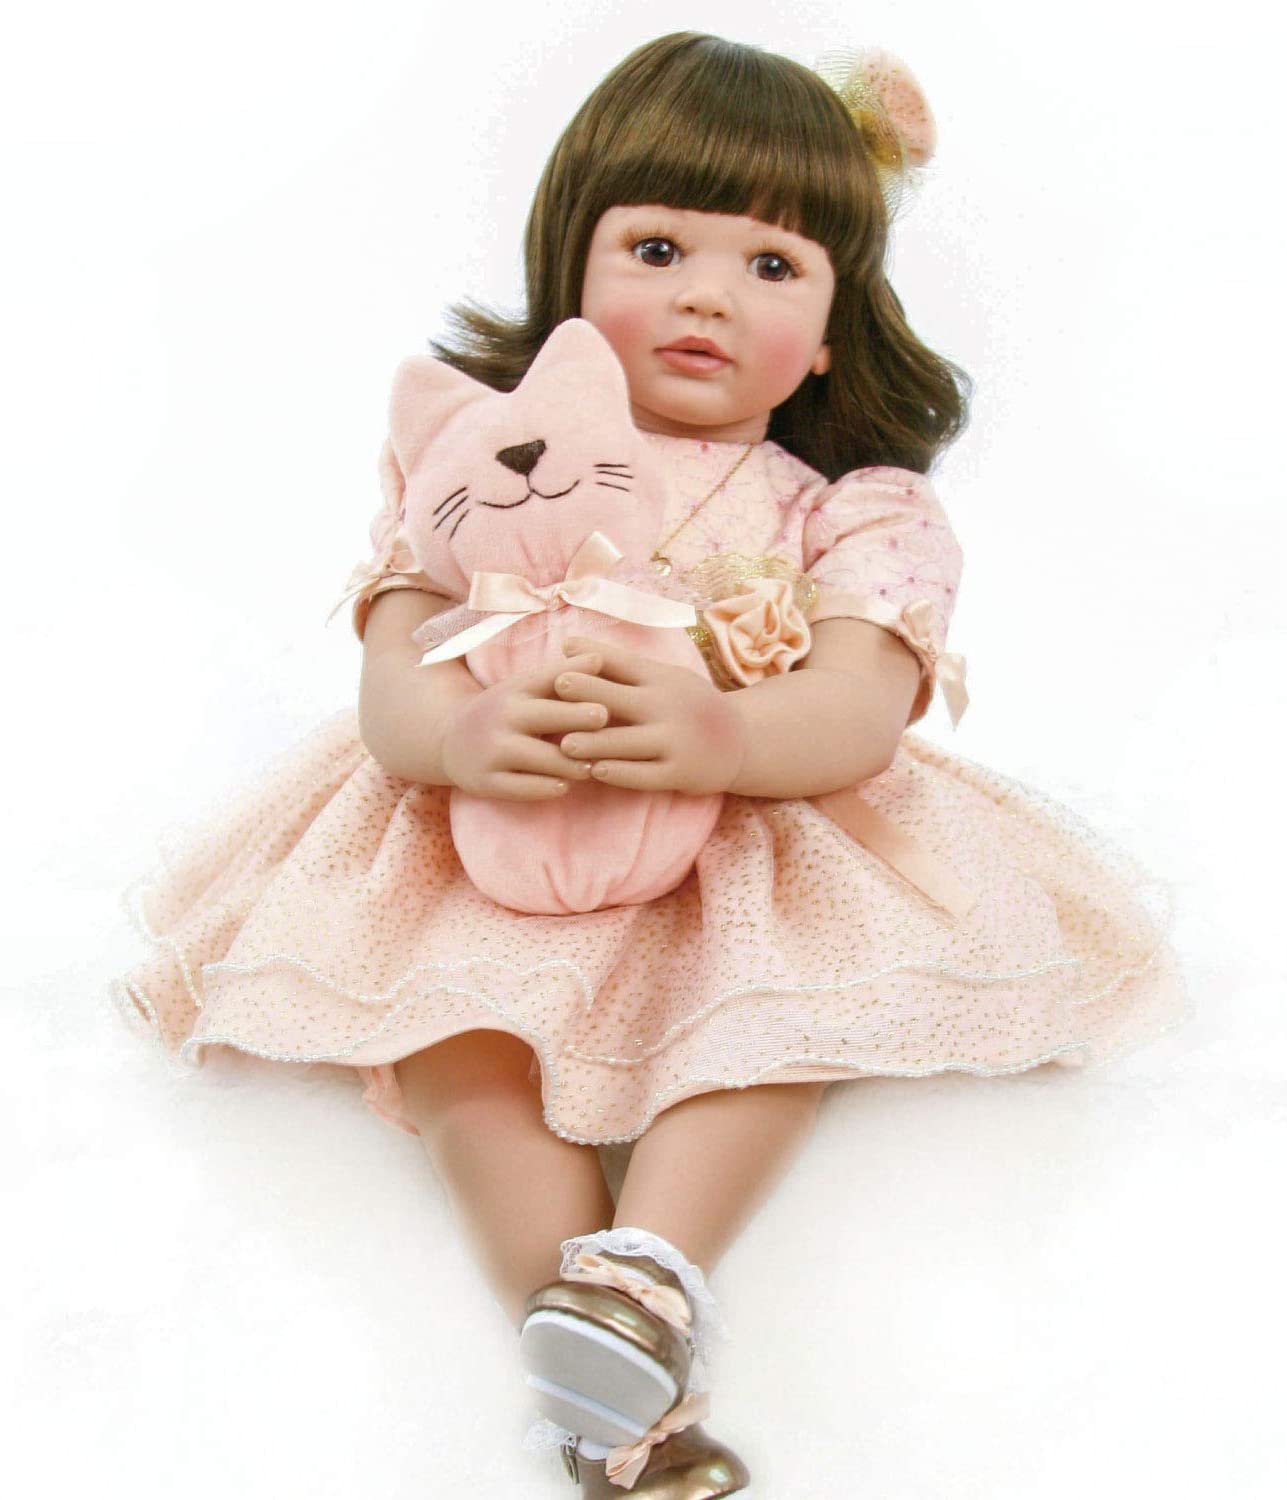 discount Love Bella Real Our shop most popular Life Baby Princess 23-inch Girl Dolls Realistic